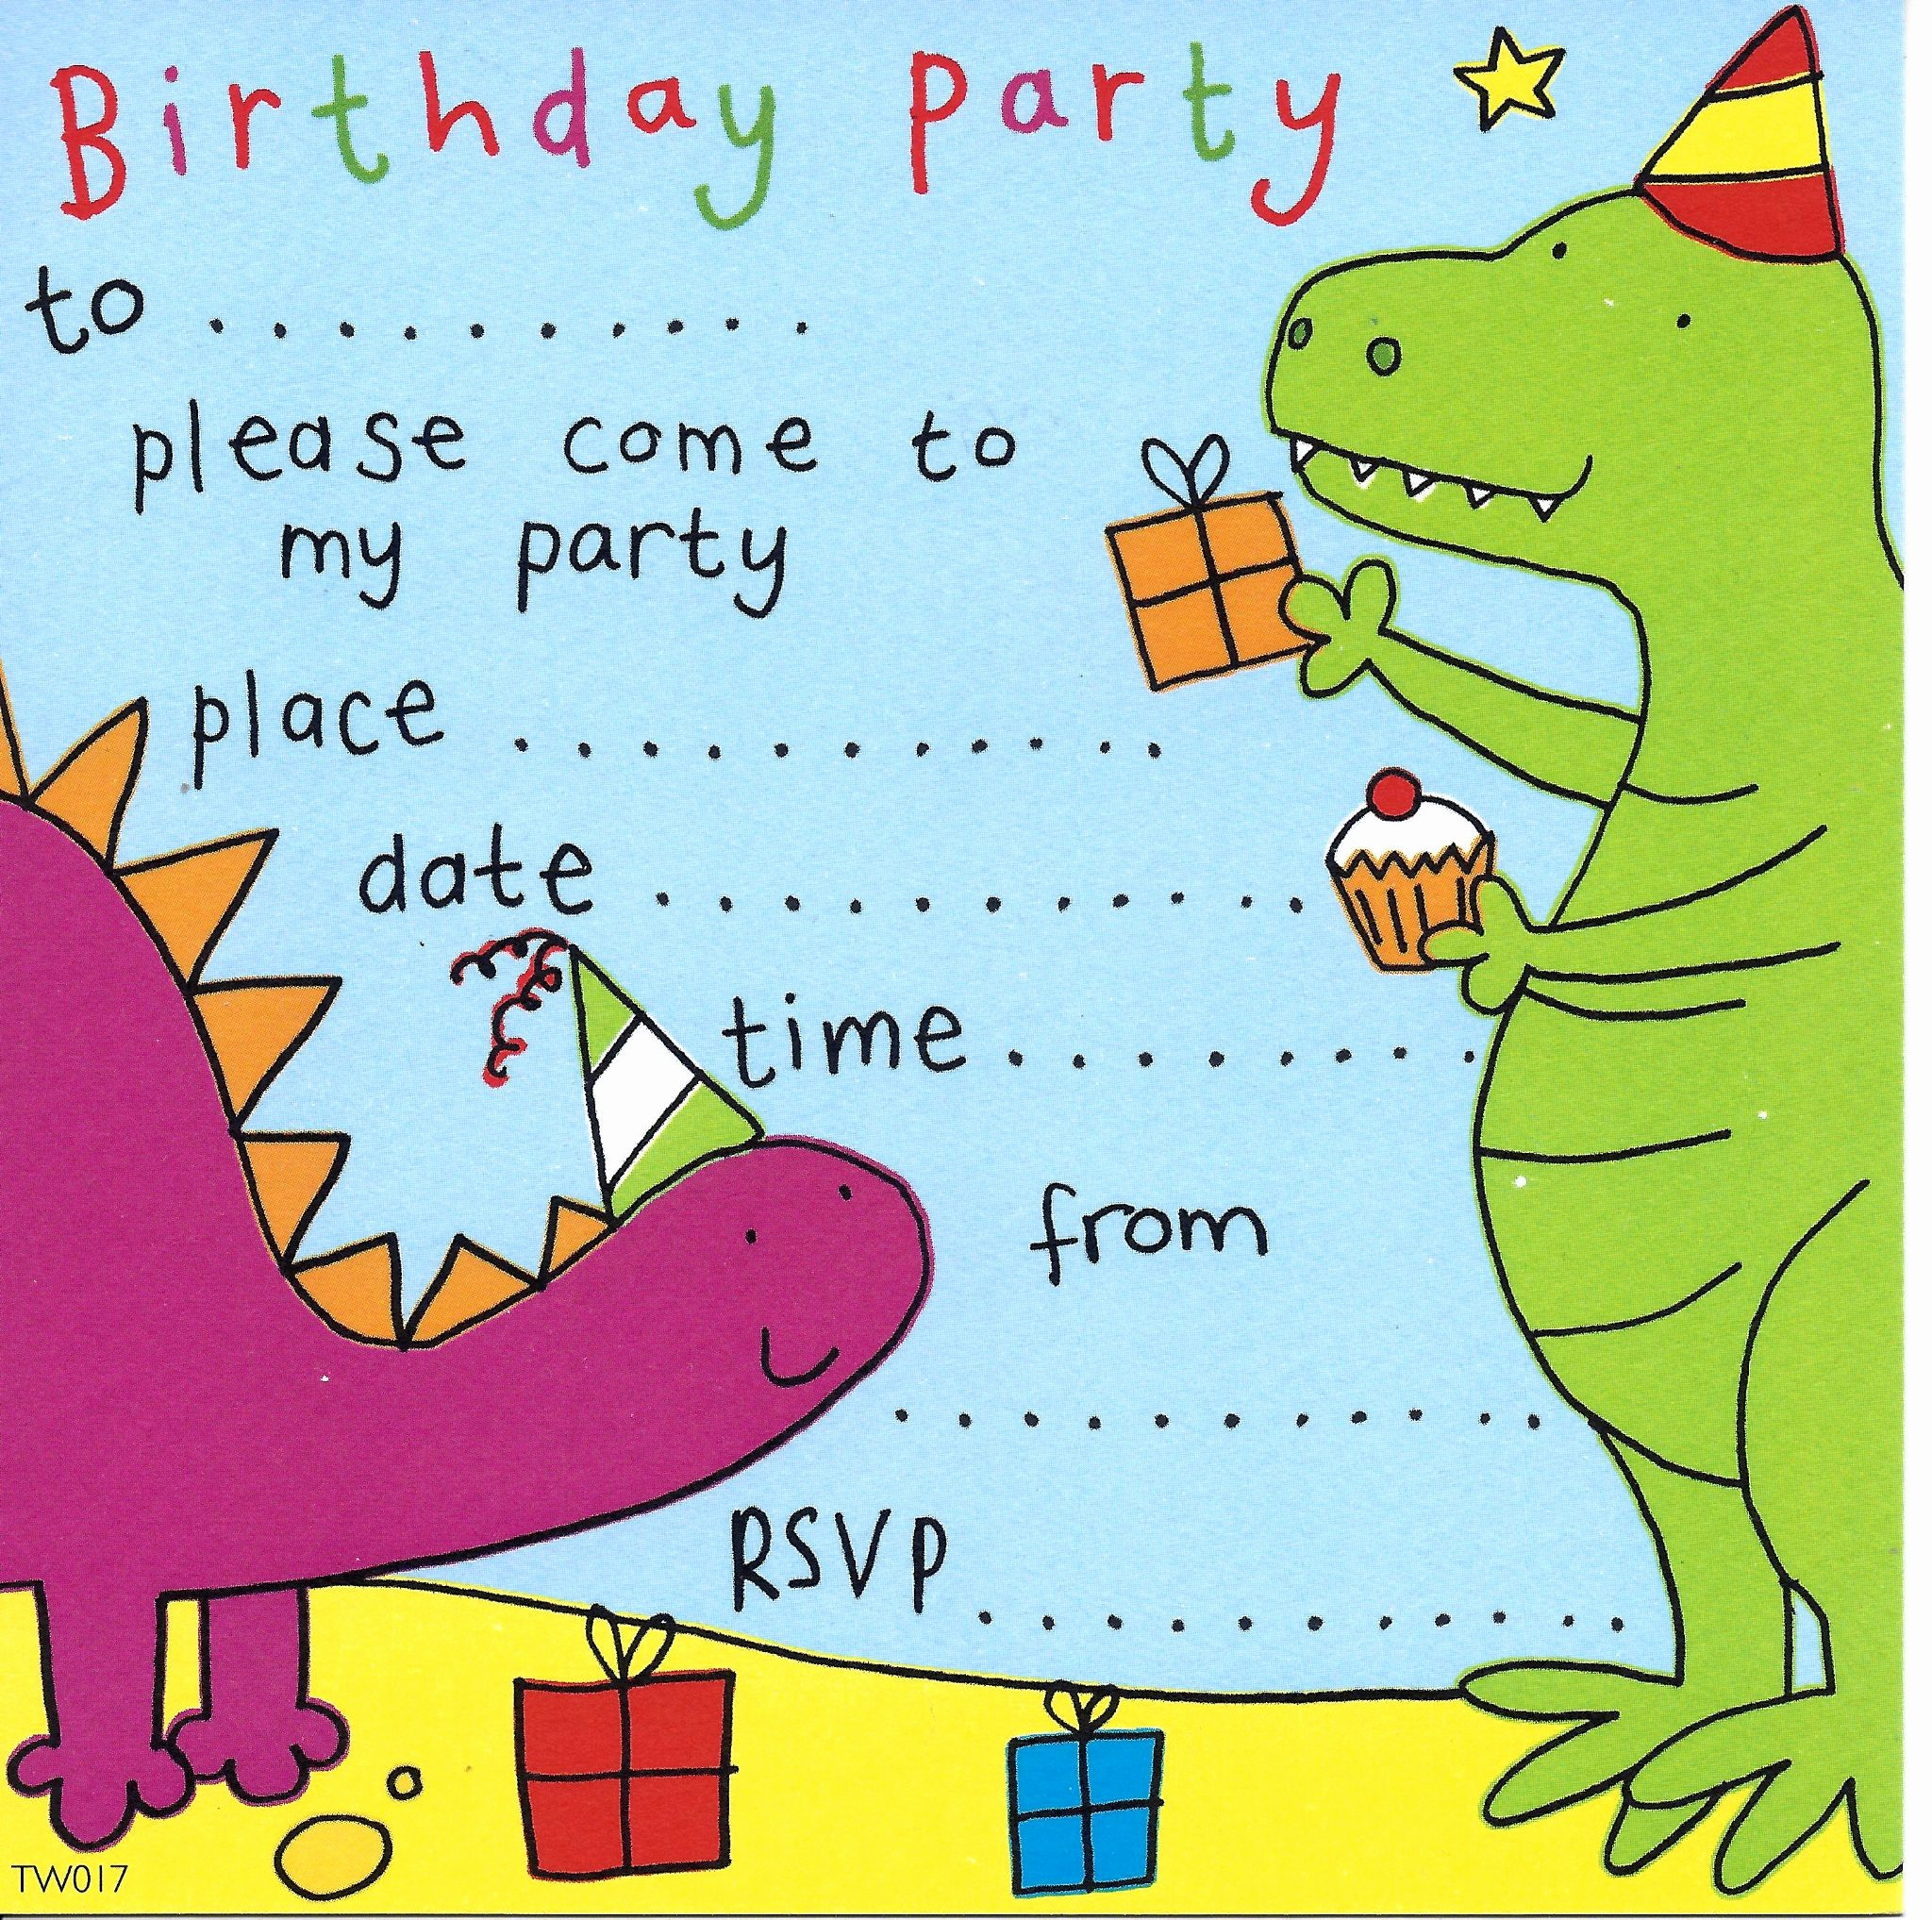 Kids Birthday Party Invite Templates New Party Invitations Birthday Party Invitations Kids Party